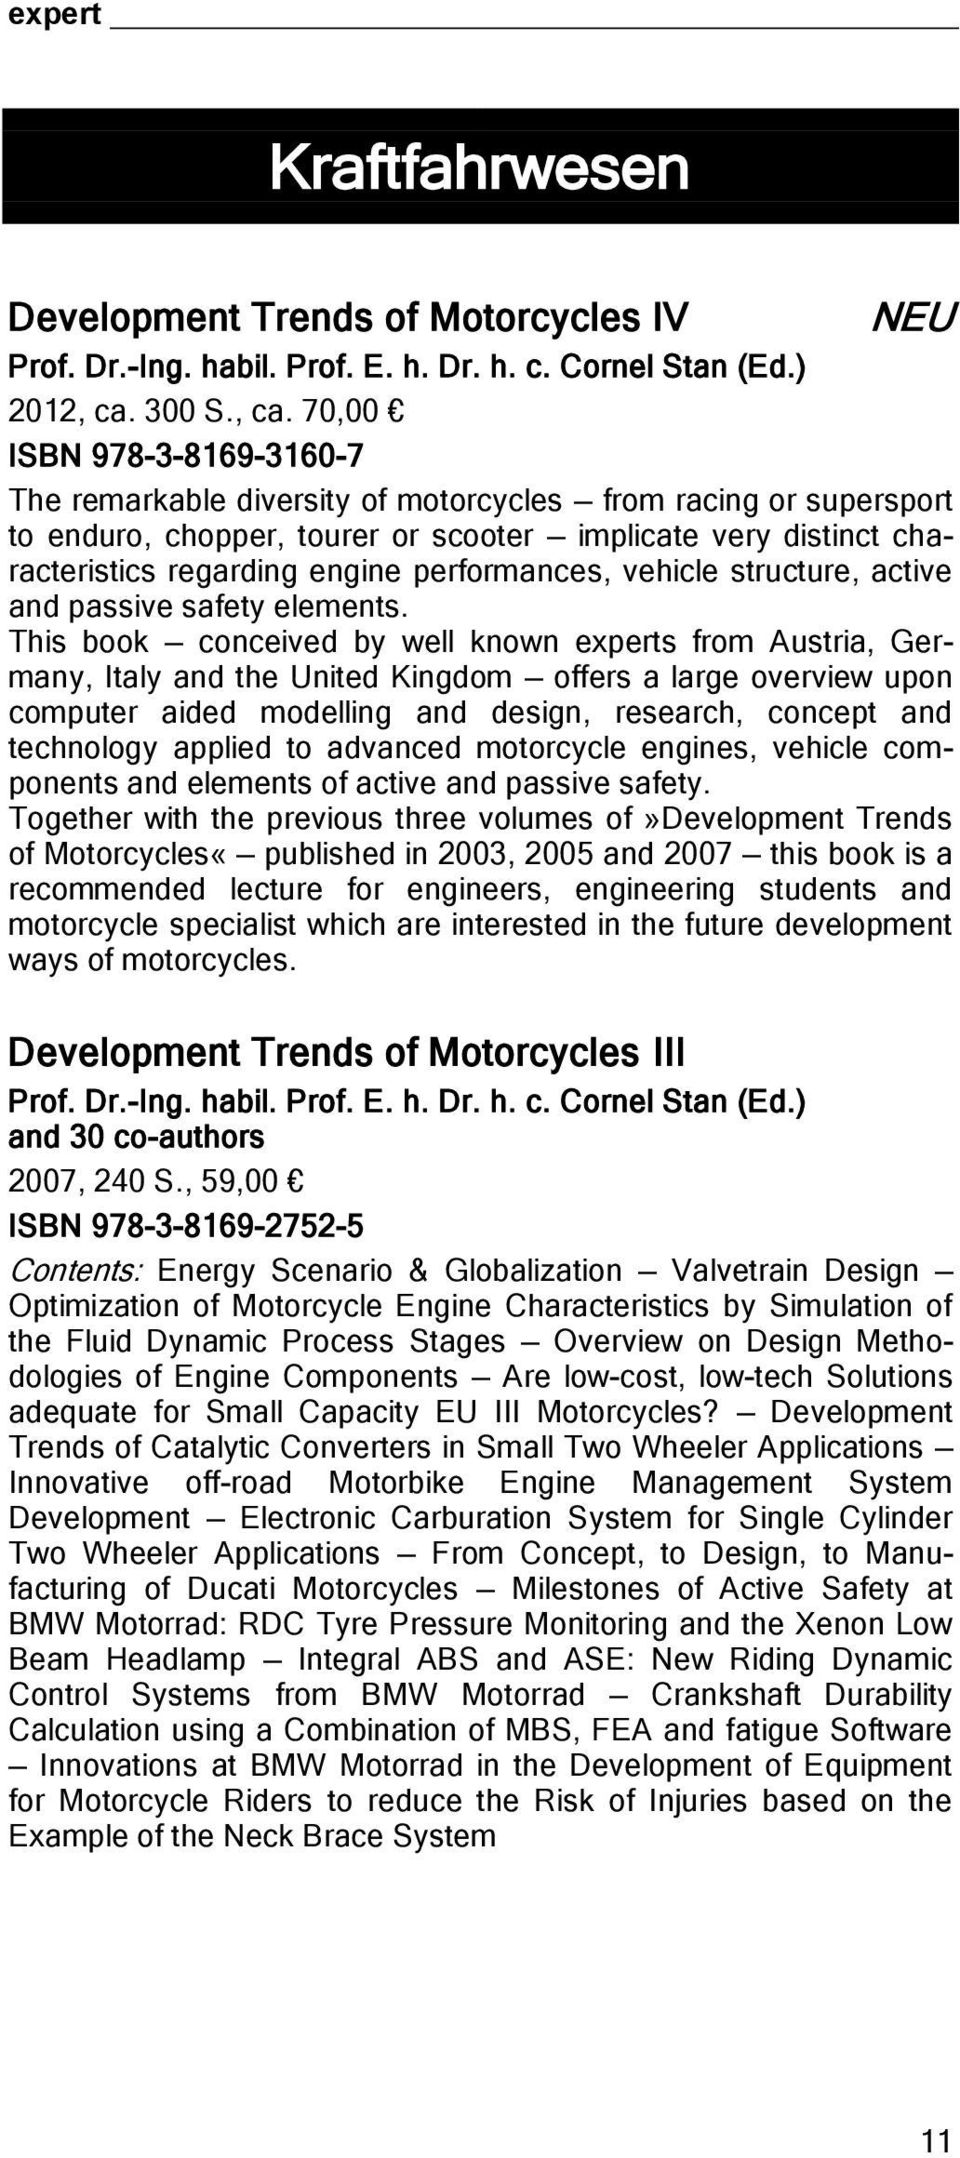 70,00 ISBN 978-3-8169-3160-7 The remarkable diversity of motorcycles from racing or supersport to enduro, chopper, tourer or scooter implicate very distinct characteristics regarding engine